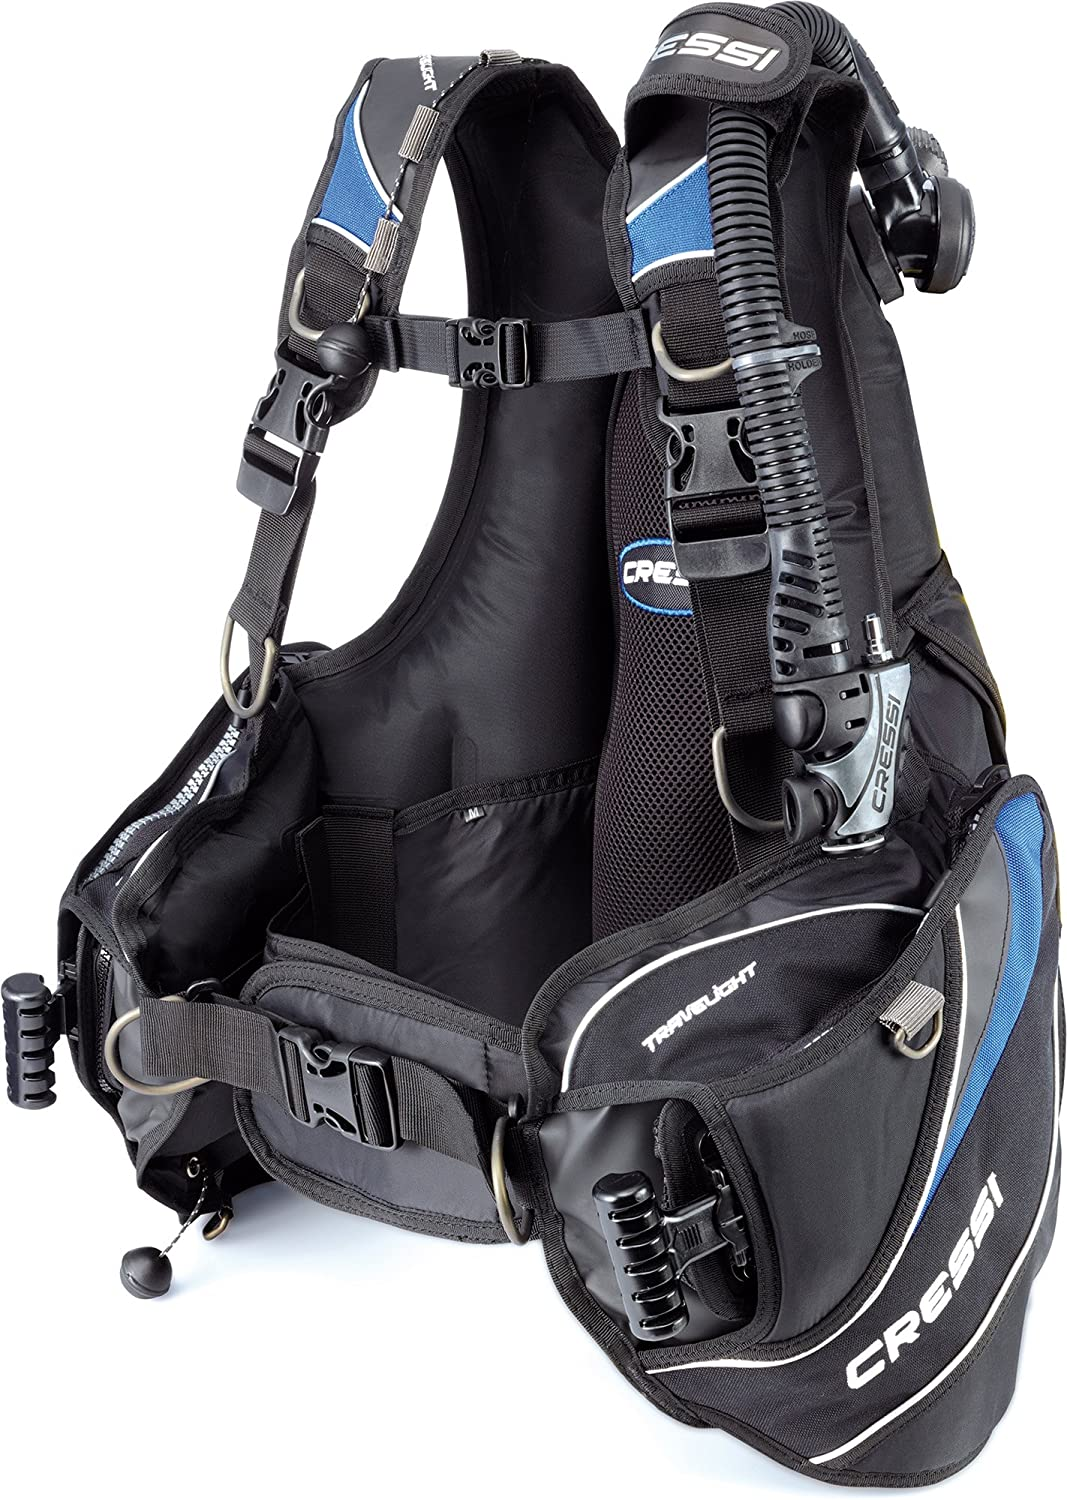 Cheap super special price Cressi Light Travel Scuba Diving BCD Foldable for - Completely S 100% quality warranty